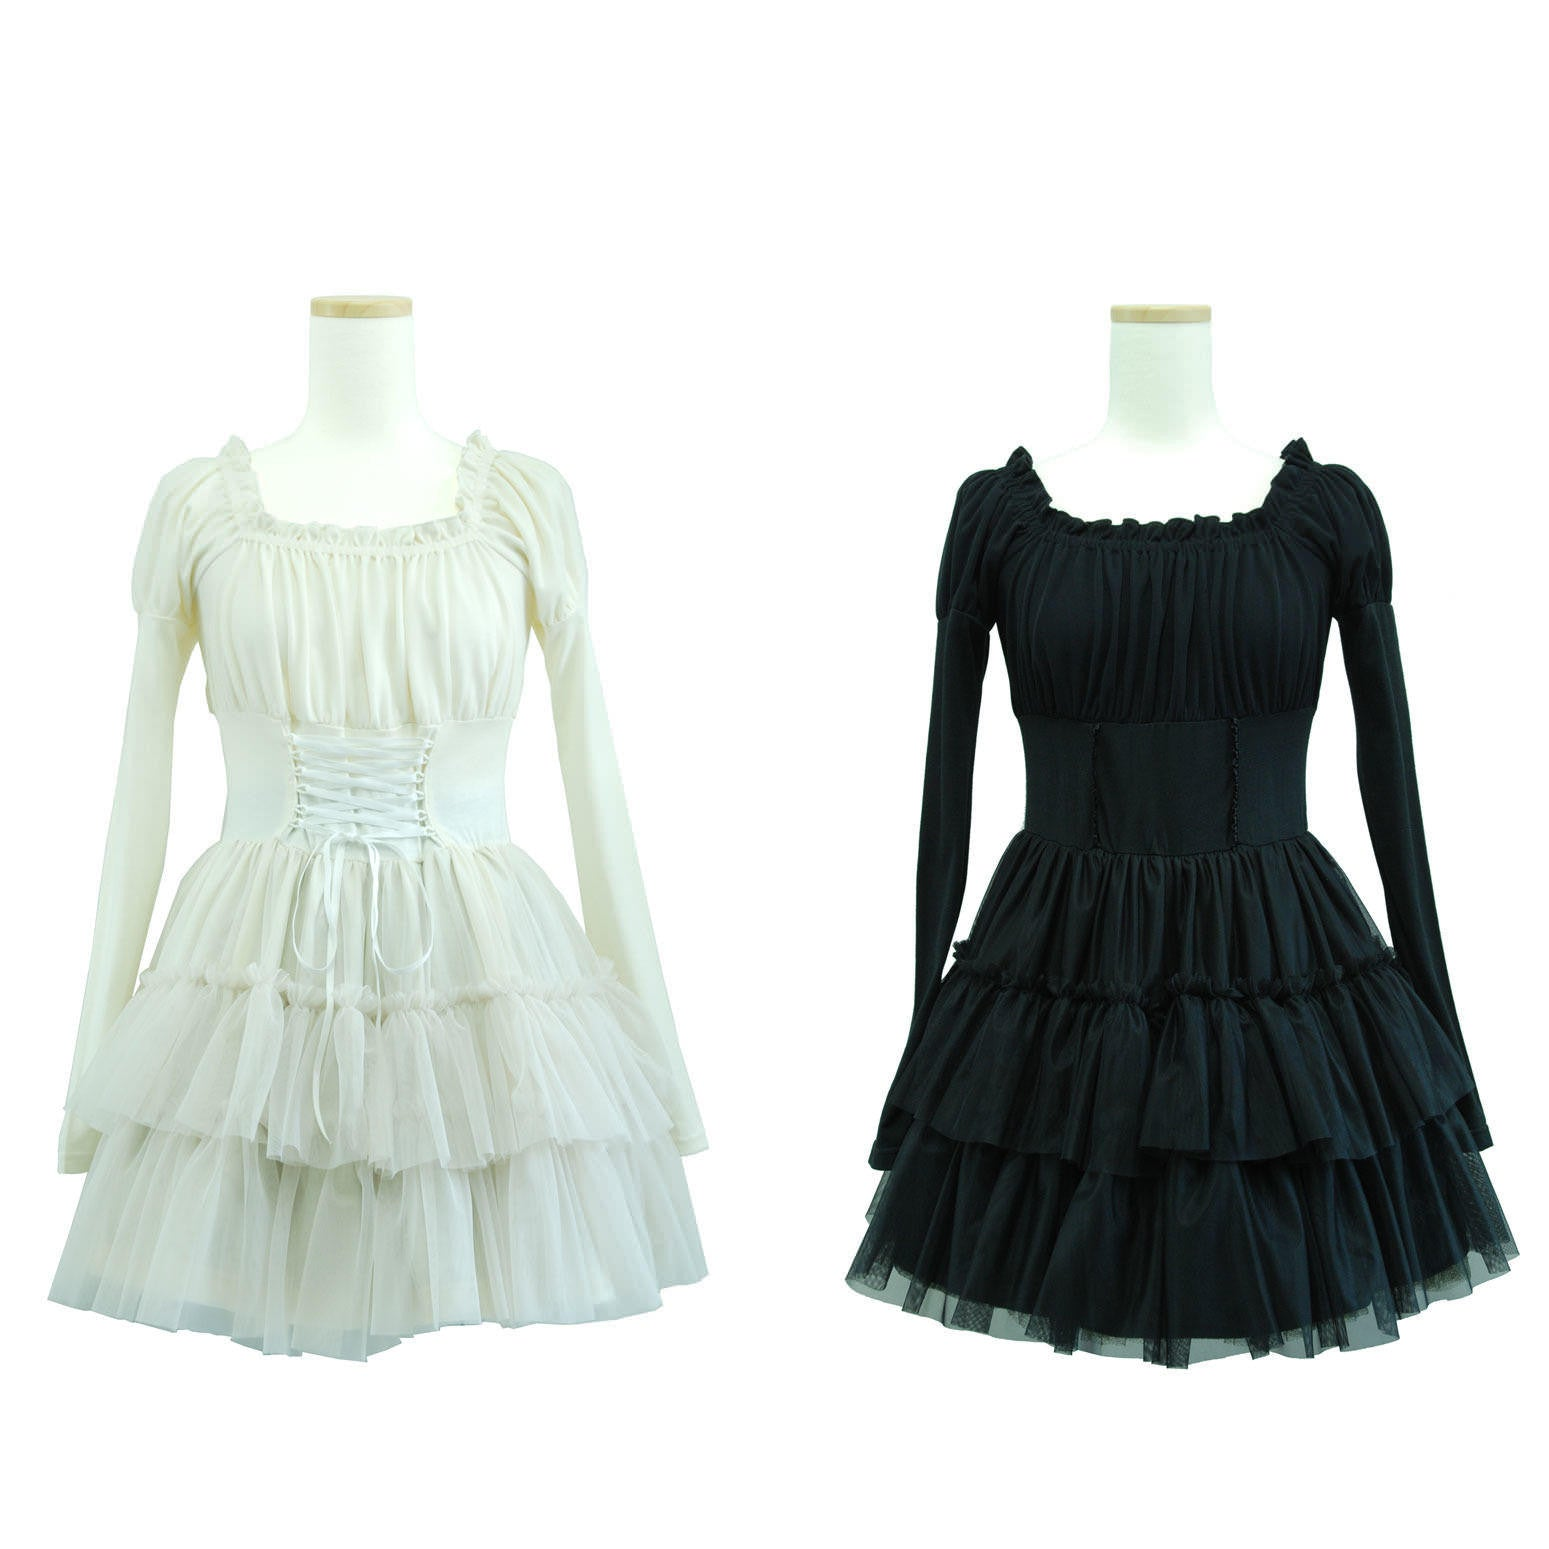 "Sheglit ""Tulle tiered dress"""